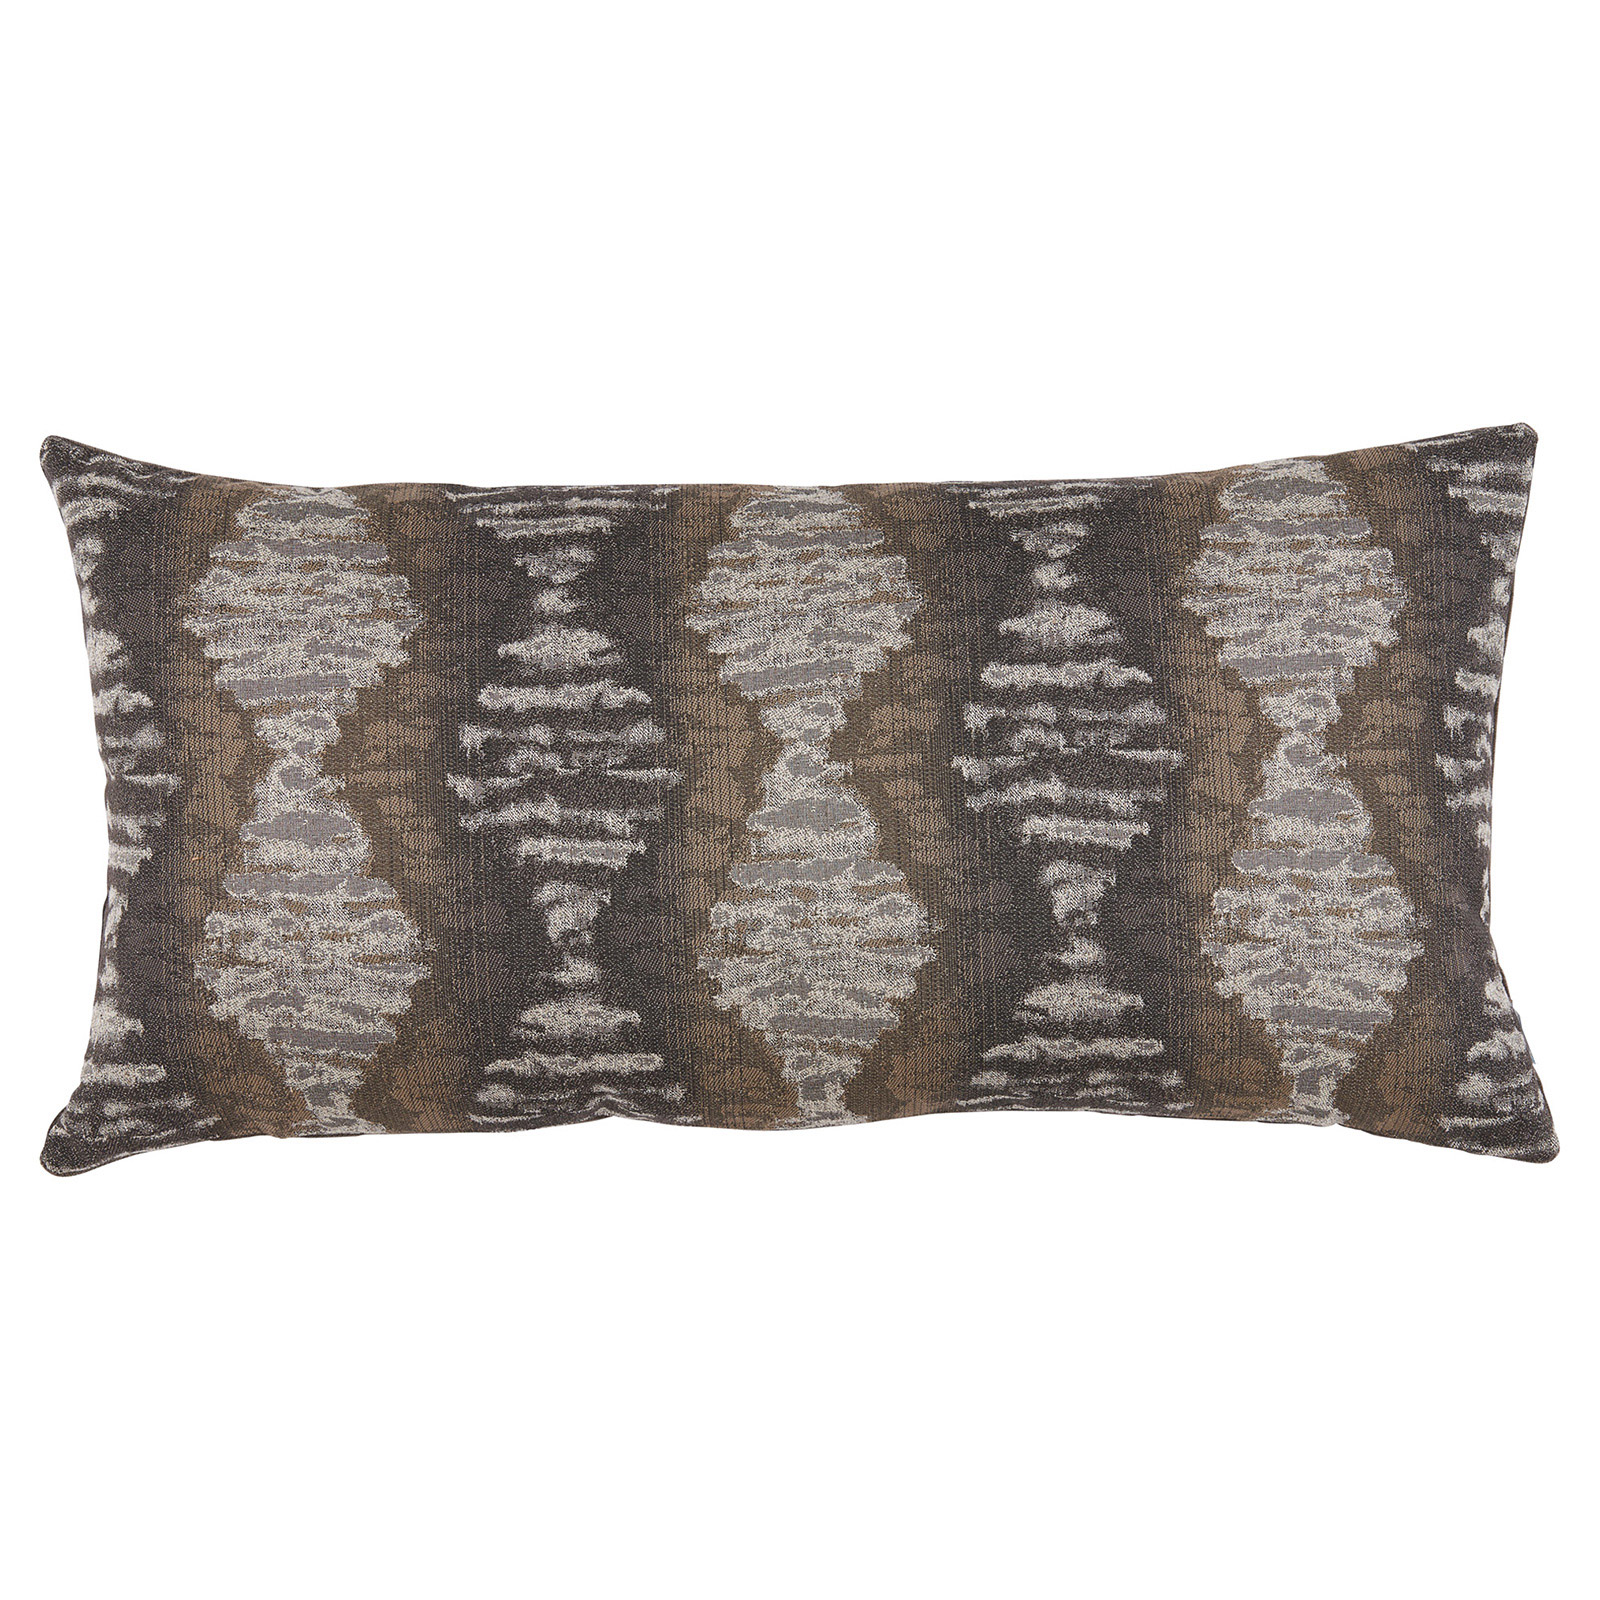 Marnie Global Distressed Diamond Charcoal Grey Pillow - 14x28